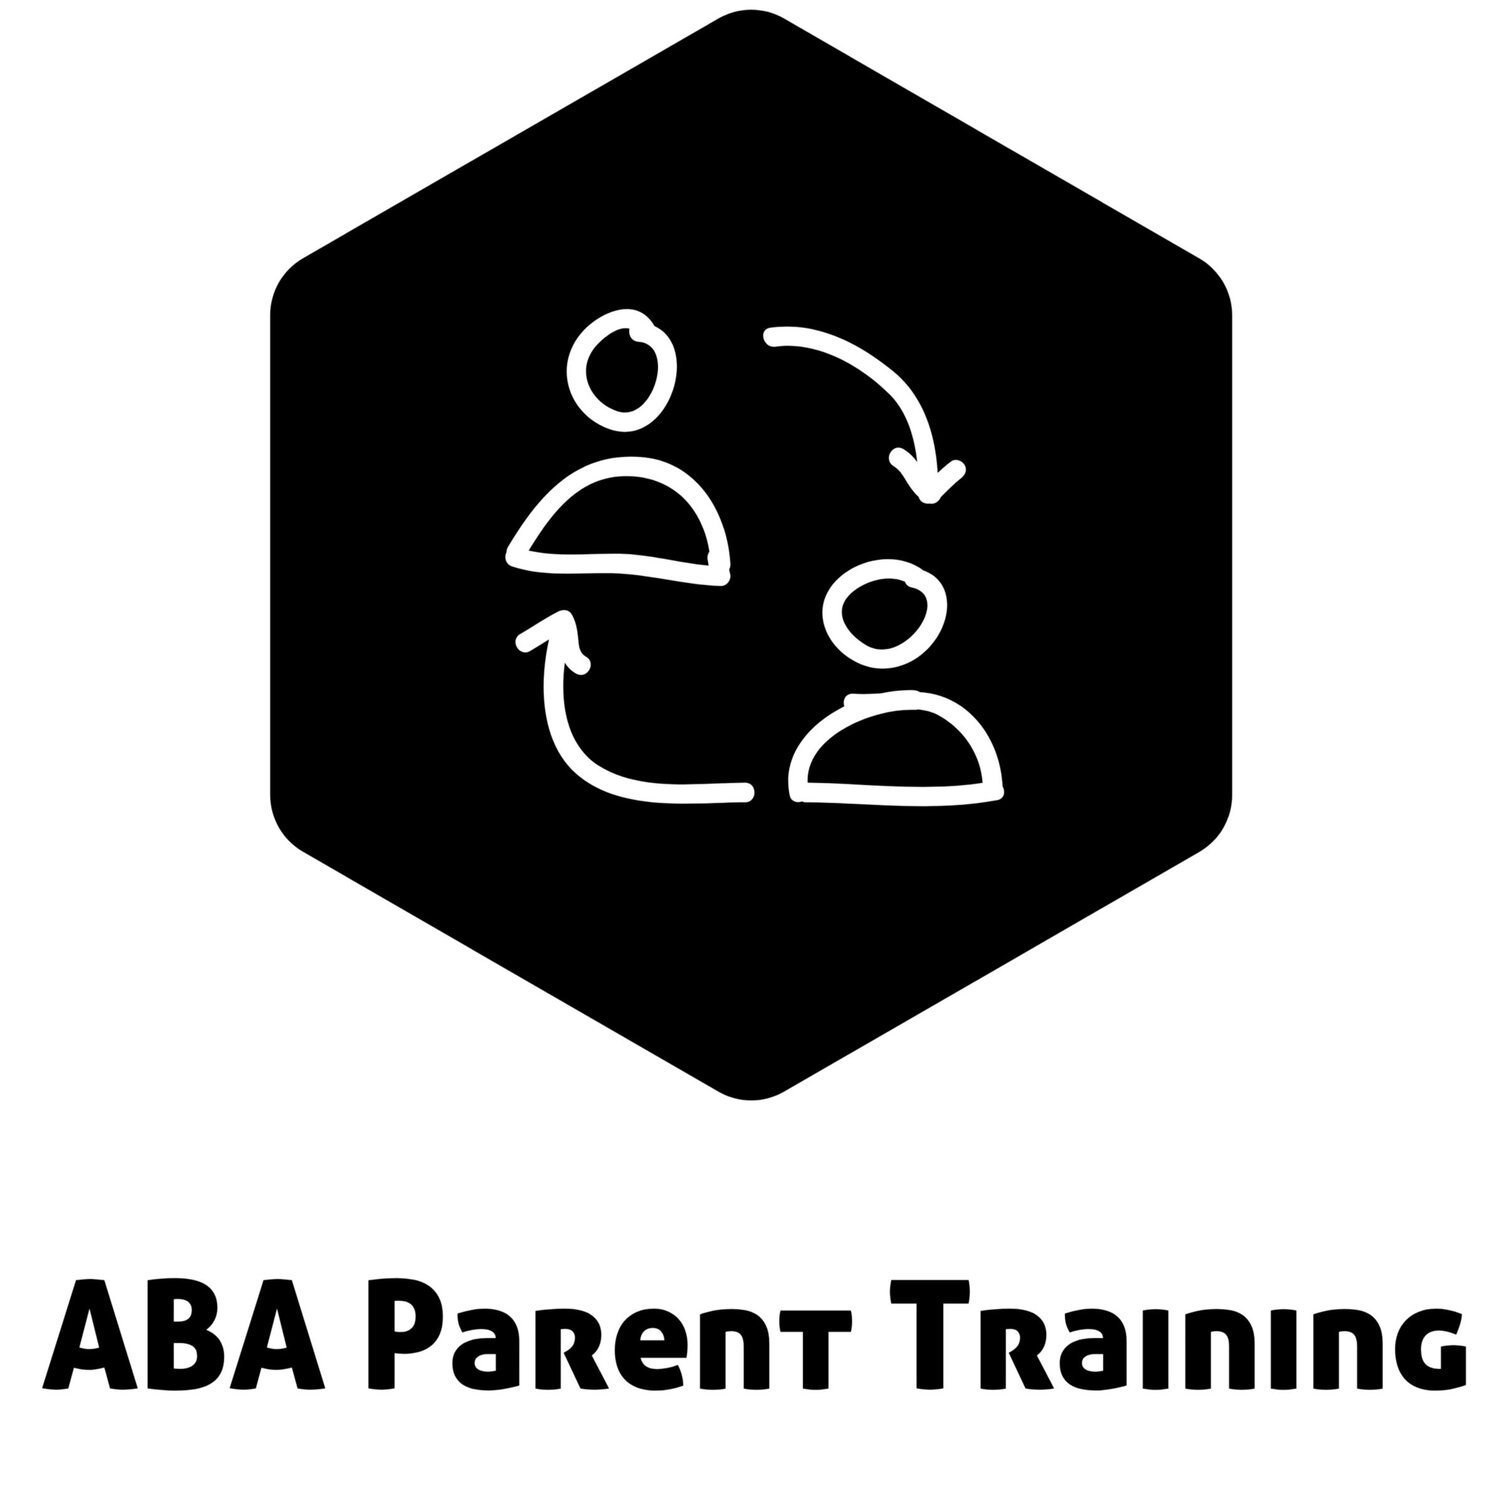 ABA Parent Training